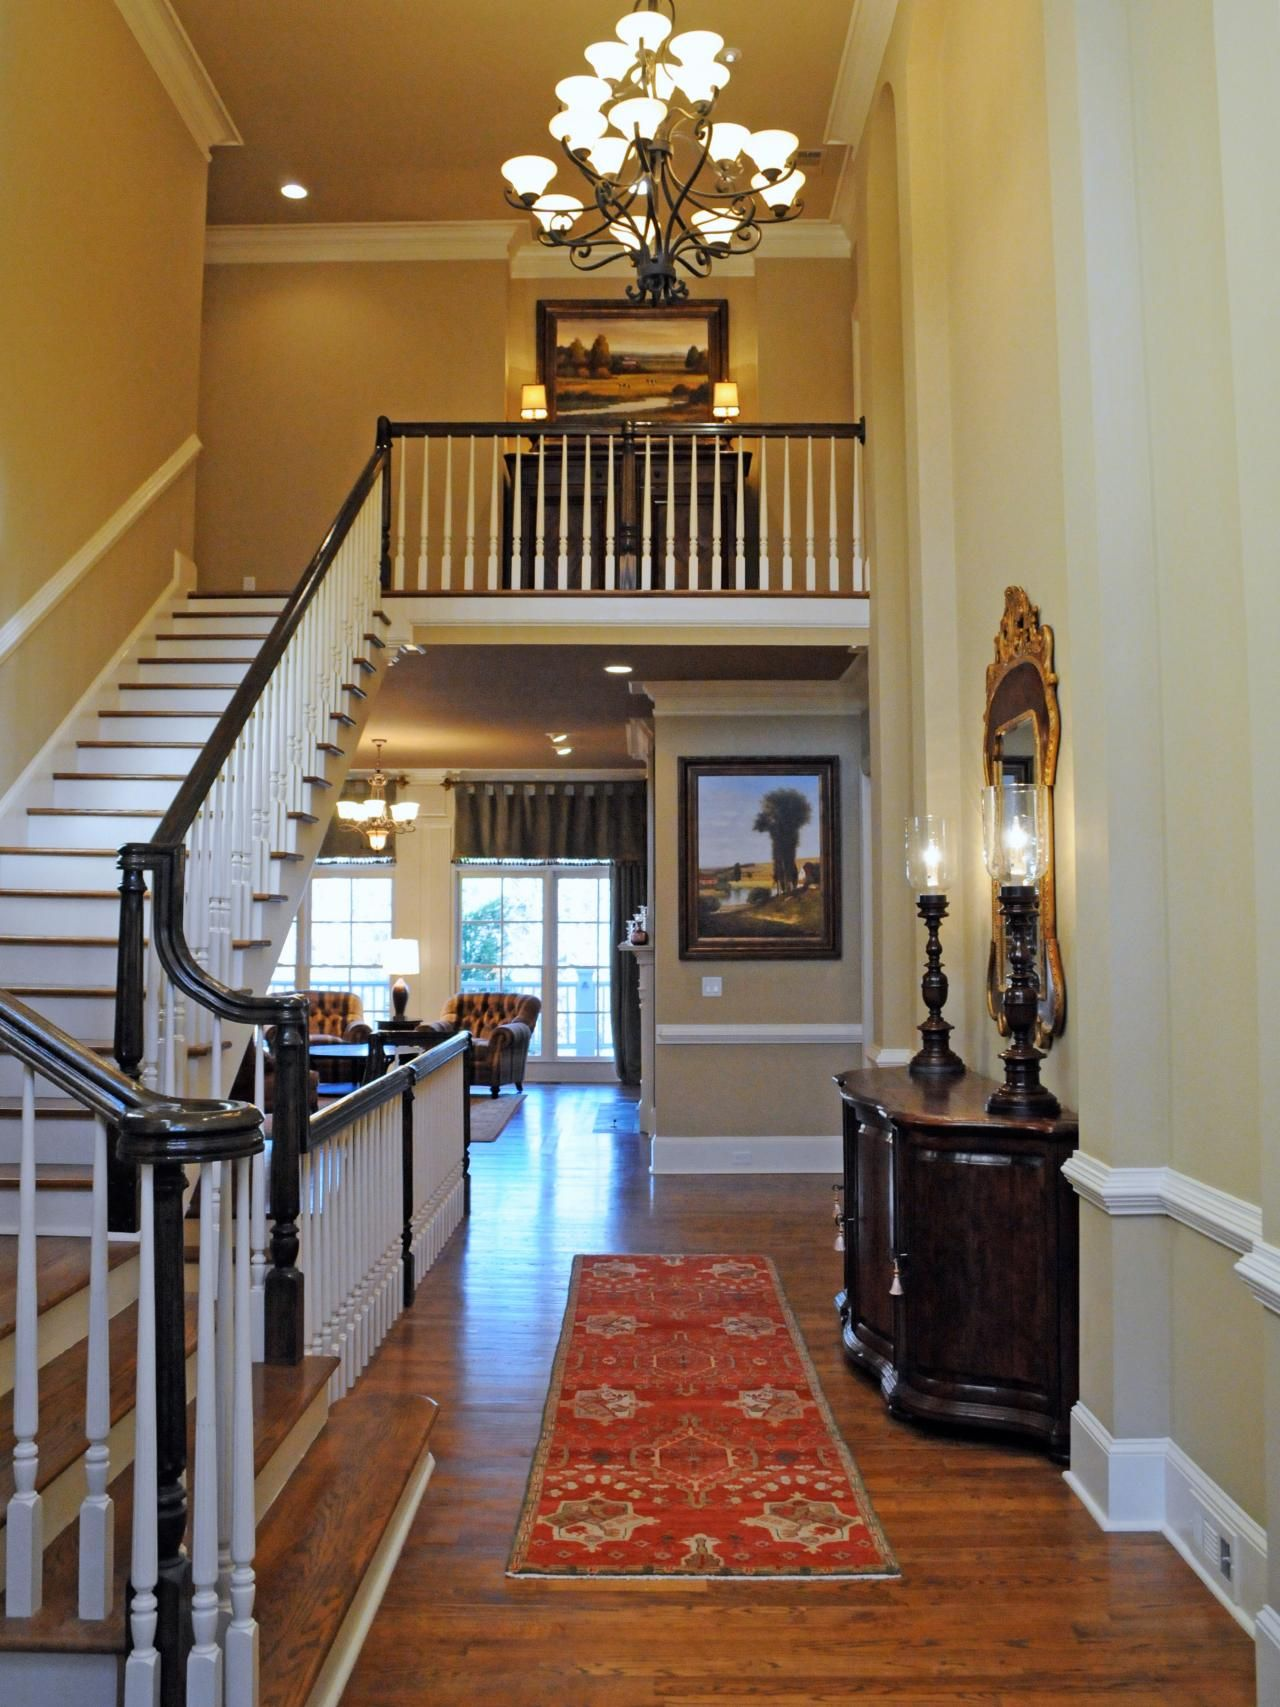 2 Story Foyer Decorating Ideas two story curved foyer - google search | foyer reno | pinterest